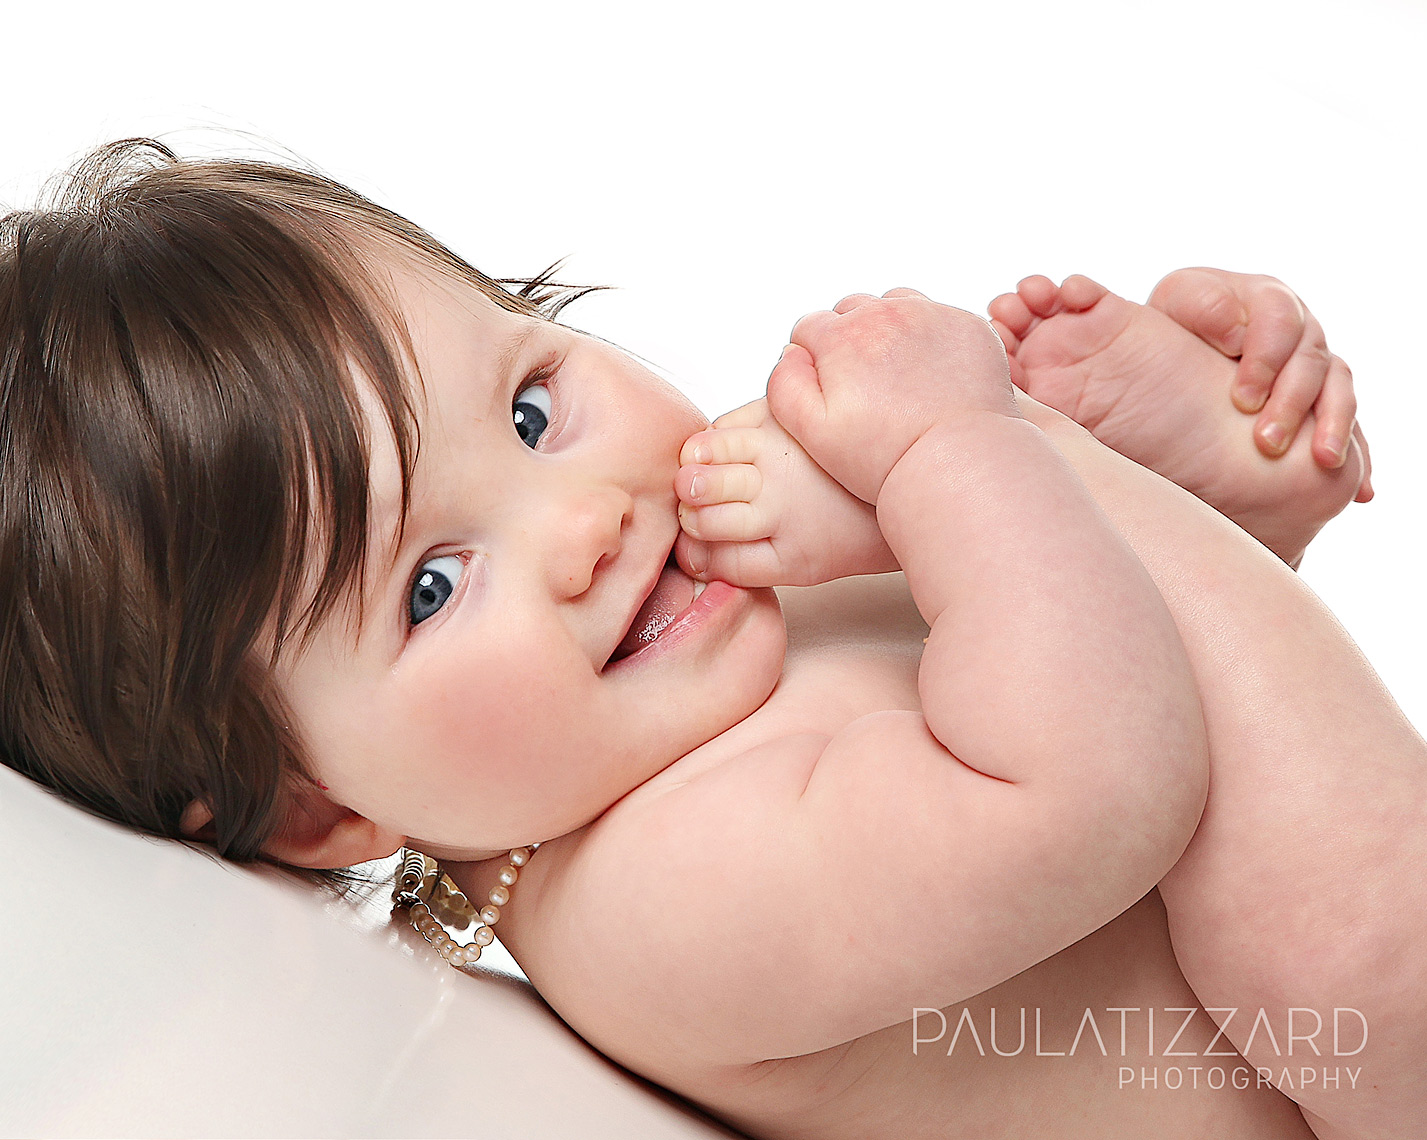 baby-toes-child-photographer-london-ontario-paula-tizzard